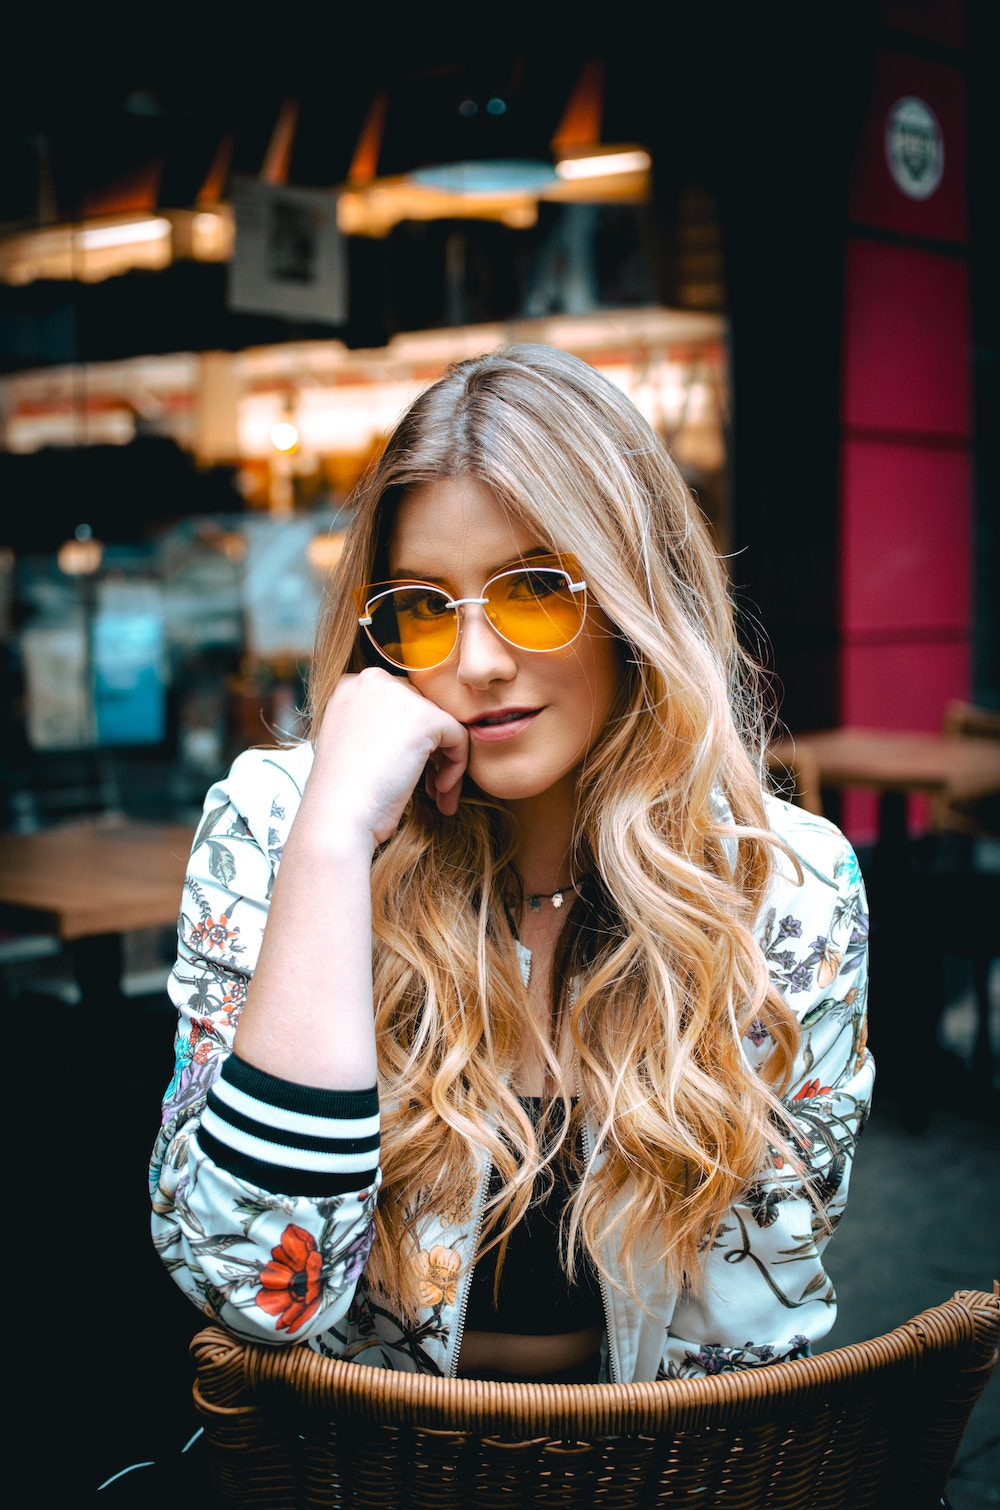 statement sunglasses with yellow lenses